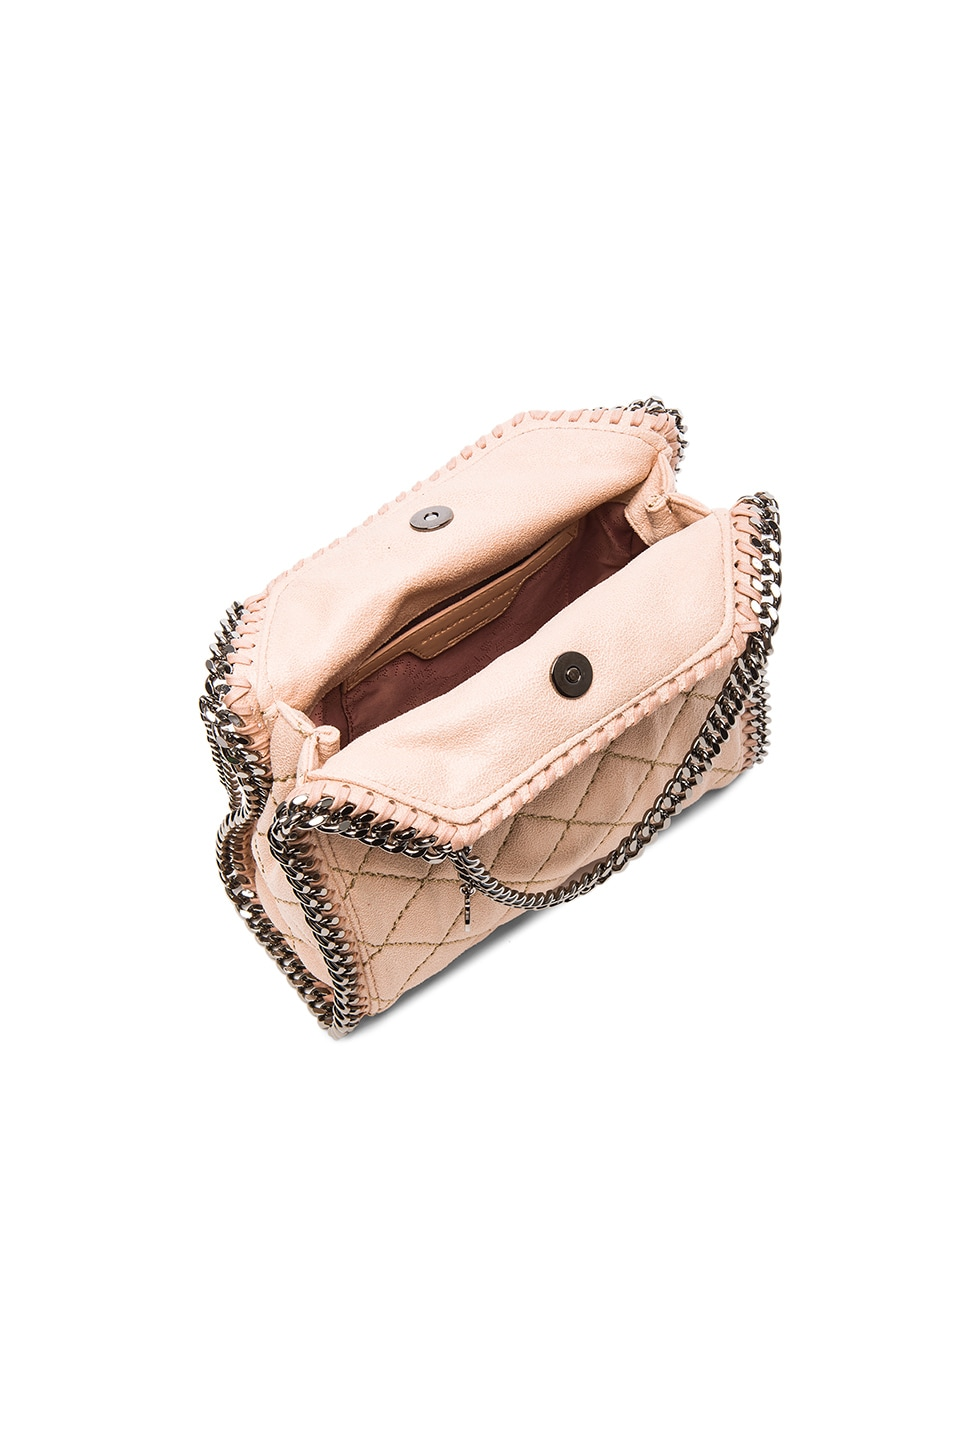 d13babcb7b Image 4 of Stella McCartney Falabella Quilted Shaggy Deer Tiny Tote in  Powder